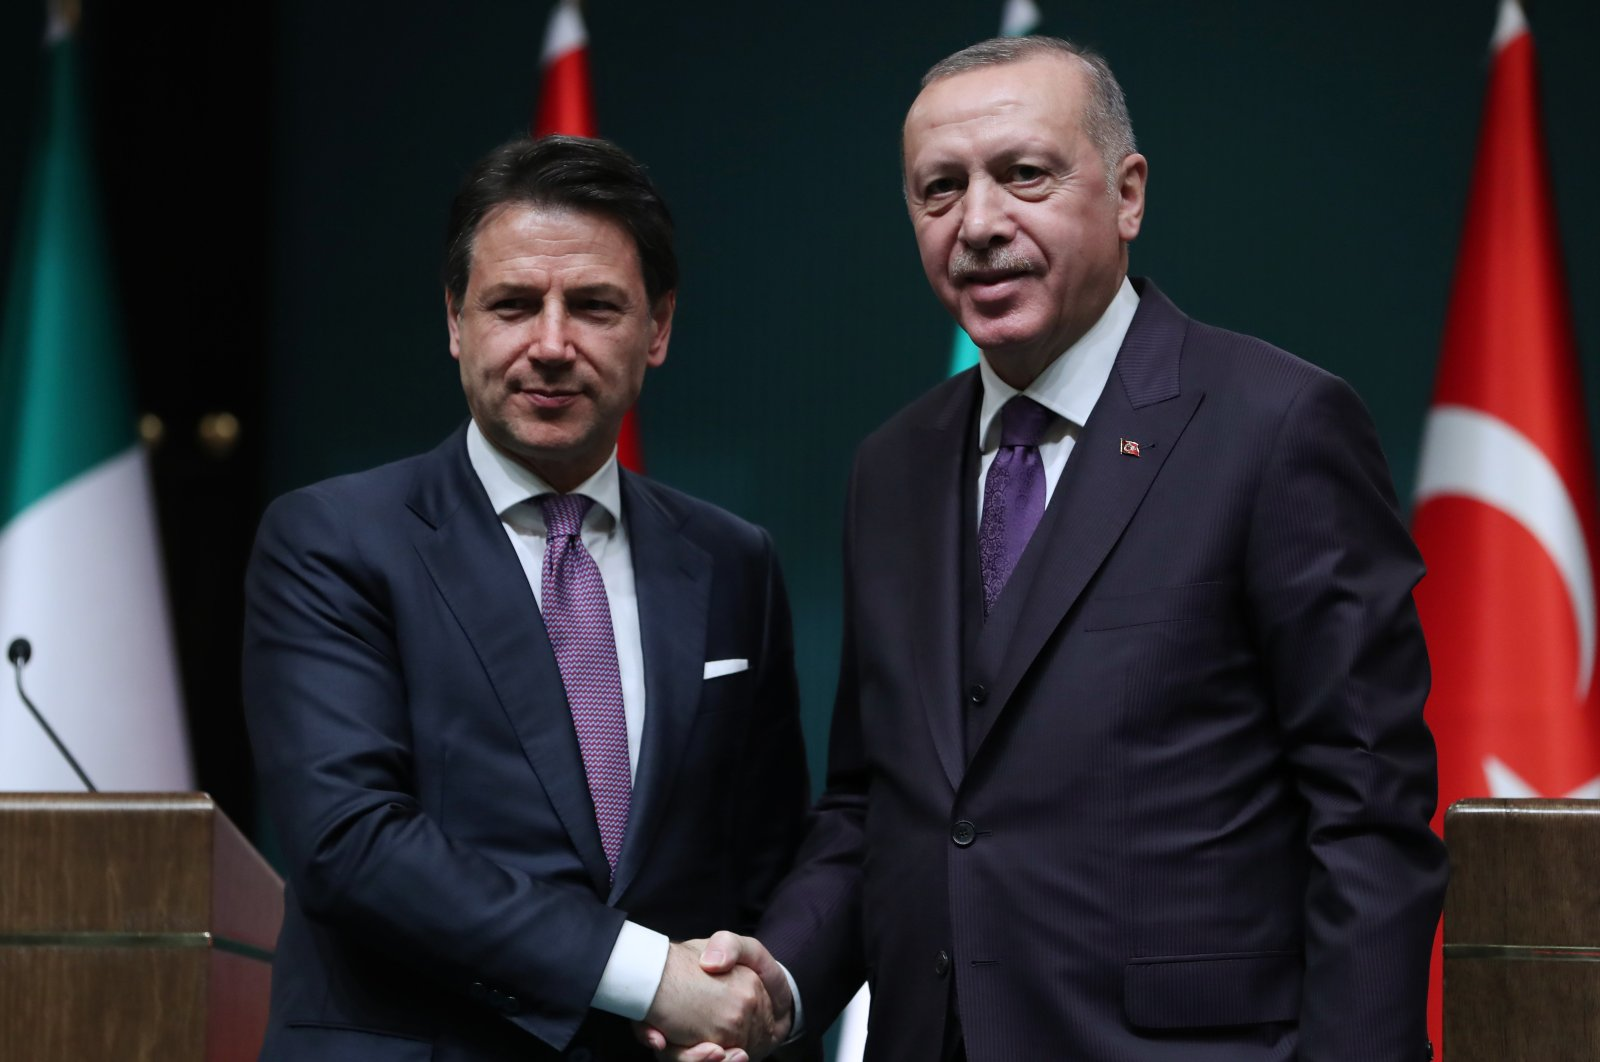 Italian Prime Minister Giuseppe Conte (L) shakes hands with President Recep Tayyip Erdoğan in the capital Ankara, Turkey, Jan. 14, 2020. (AA Photo)